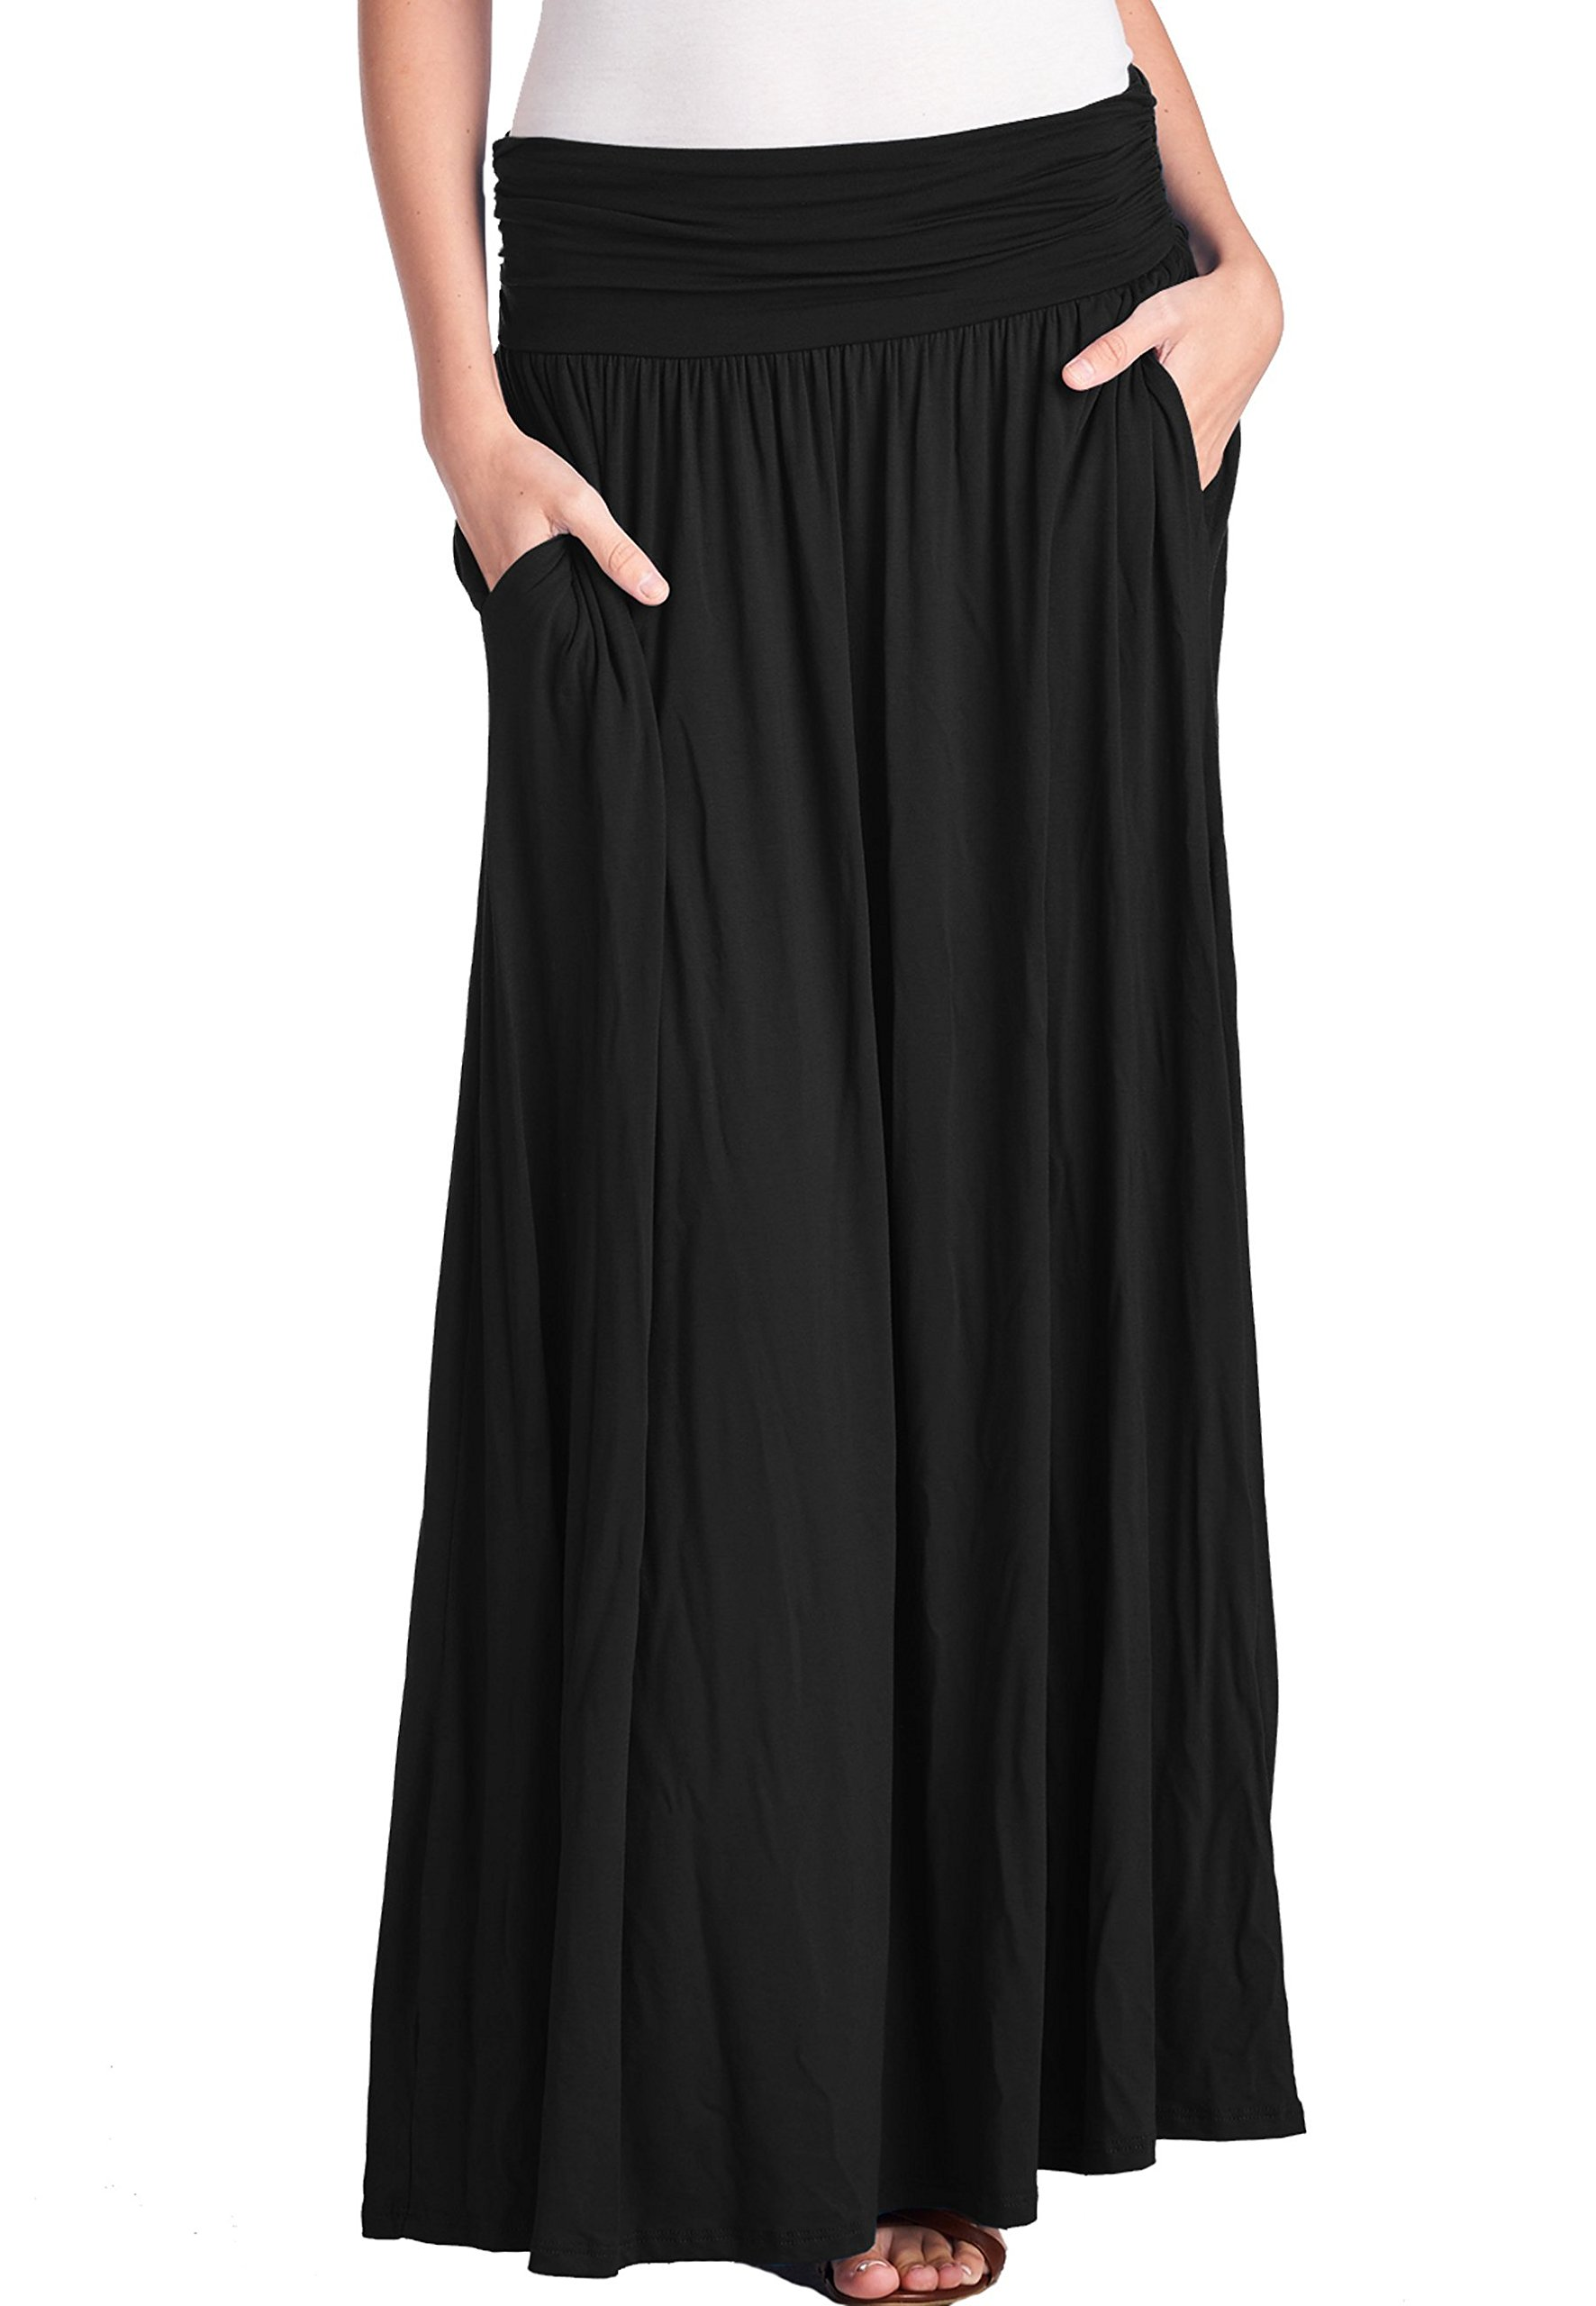 TRENDY UNITED Women's High Waist Fold Over Shirring Maxi Skirt with Pockets ,Black-maxi,X-Large